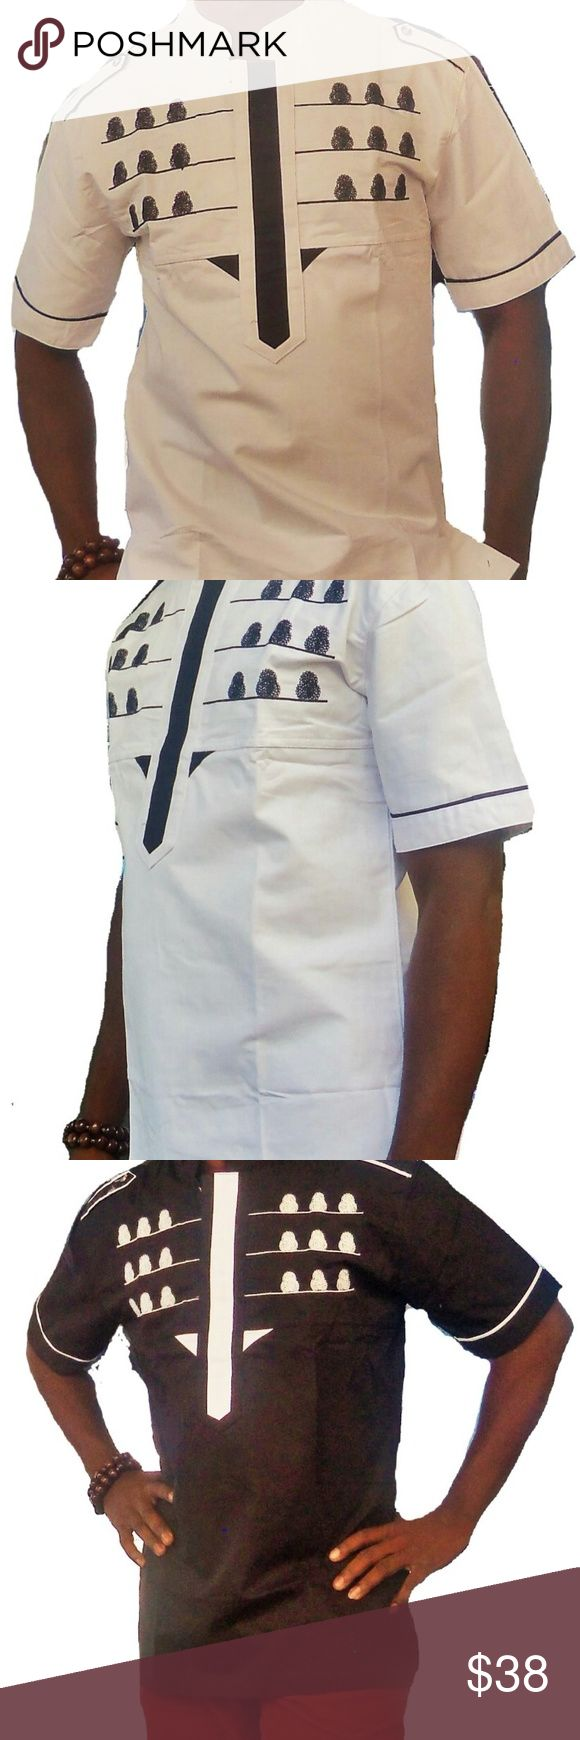 African Clothing Men This is a classic Men's short Sleeve African Traditional clothing finely and neatly sewn and it's made with high quality fabric. It has a perfect finish and it is ideal for any special occasion be it wedding ceremony, church service, party, outdooring etc.This costume can also be a perfect gift option to a love one. African Clothing Men Shirts Casual Button Down Shirts